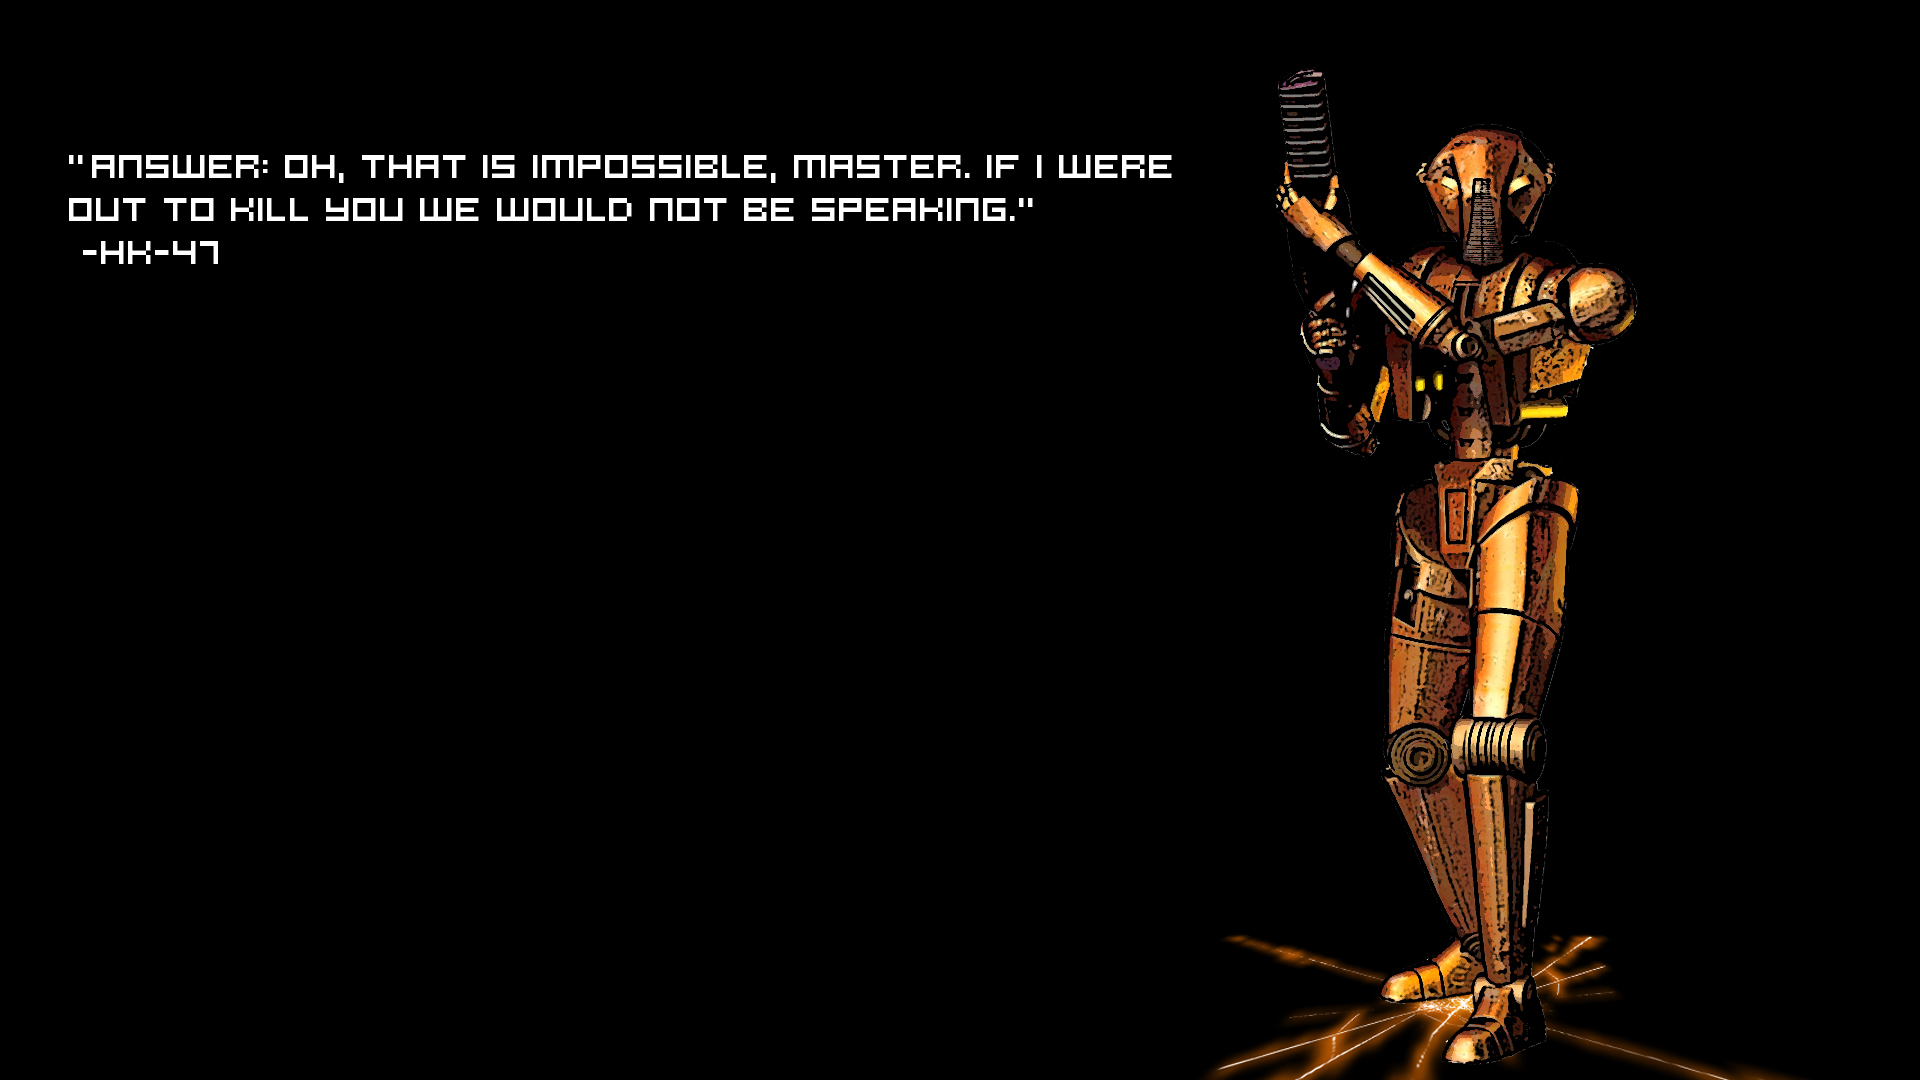 star wars text Quotes HD Wallpaper